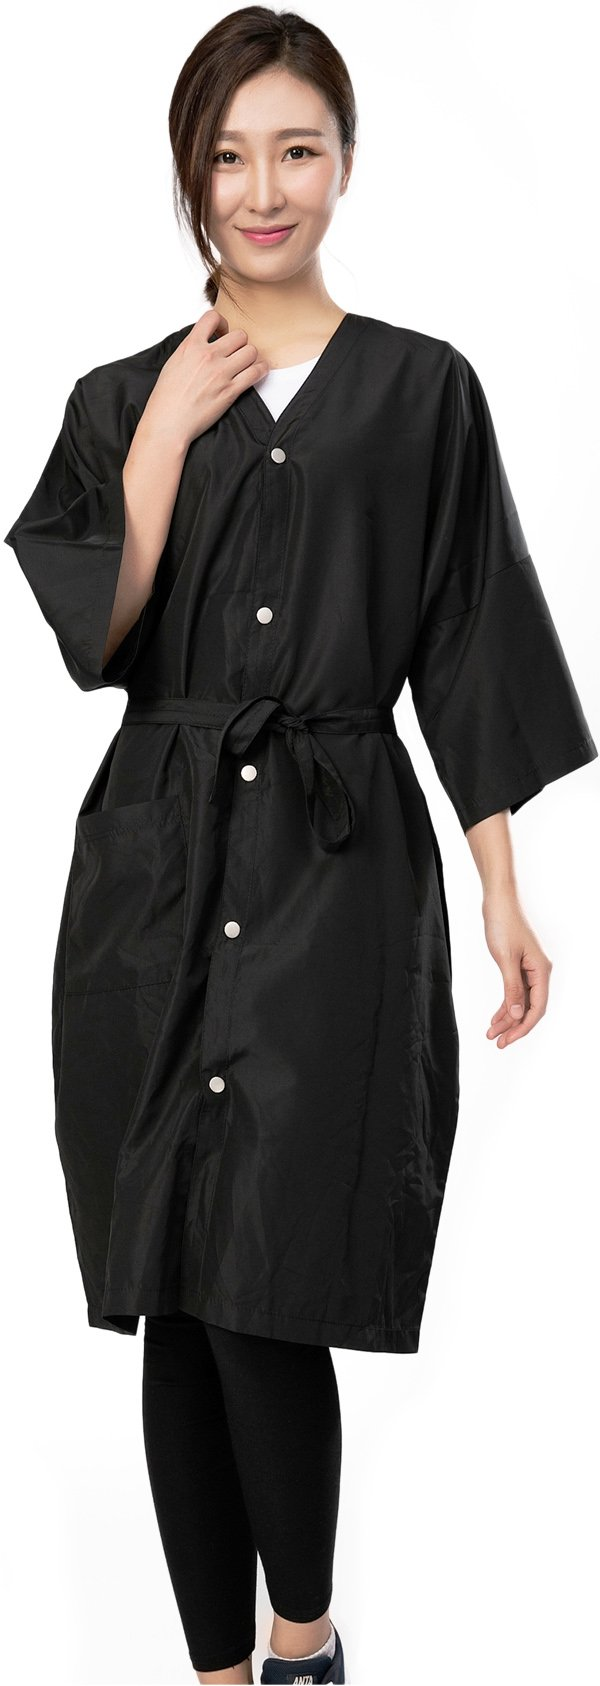 Salon Client Gown Robes Cape, Hair Salon Smock for Clients- Kimono Style, 5 Snap Closures